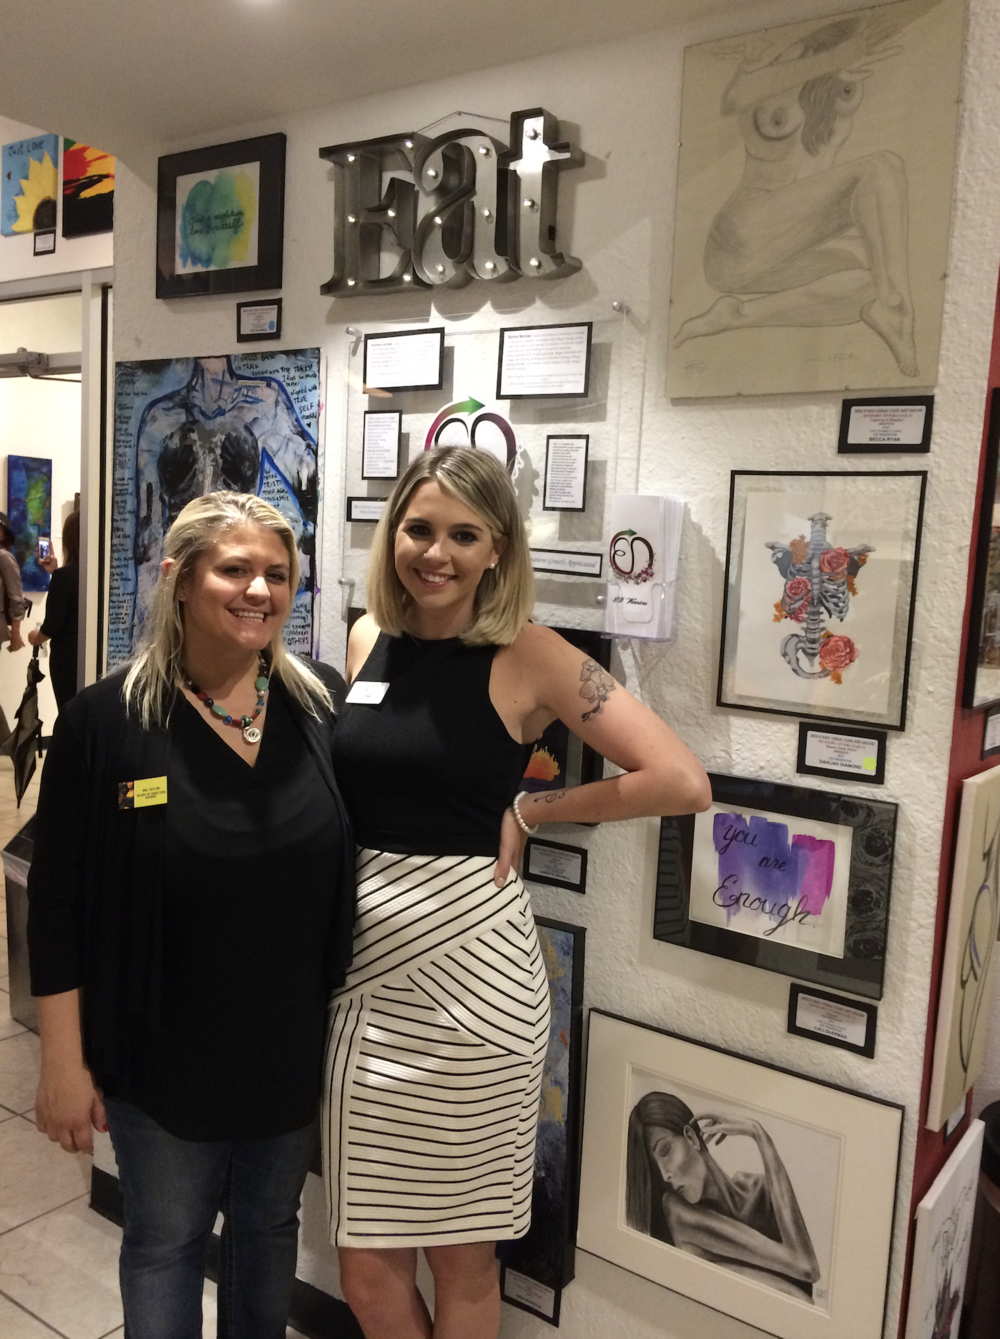 Mel Taylor, Founder of MBGC (left) and Belle Donnelly, Founder of EDW (right) at the 11th Annual Sensory Overload Art Show in Downtown Orlando, Florida.